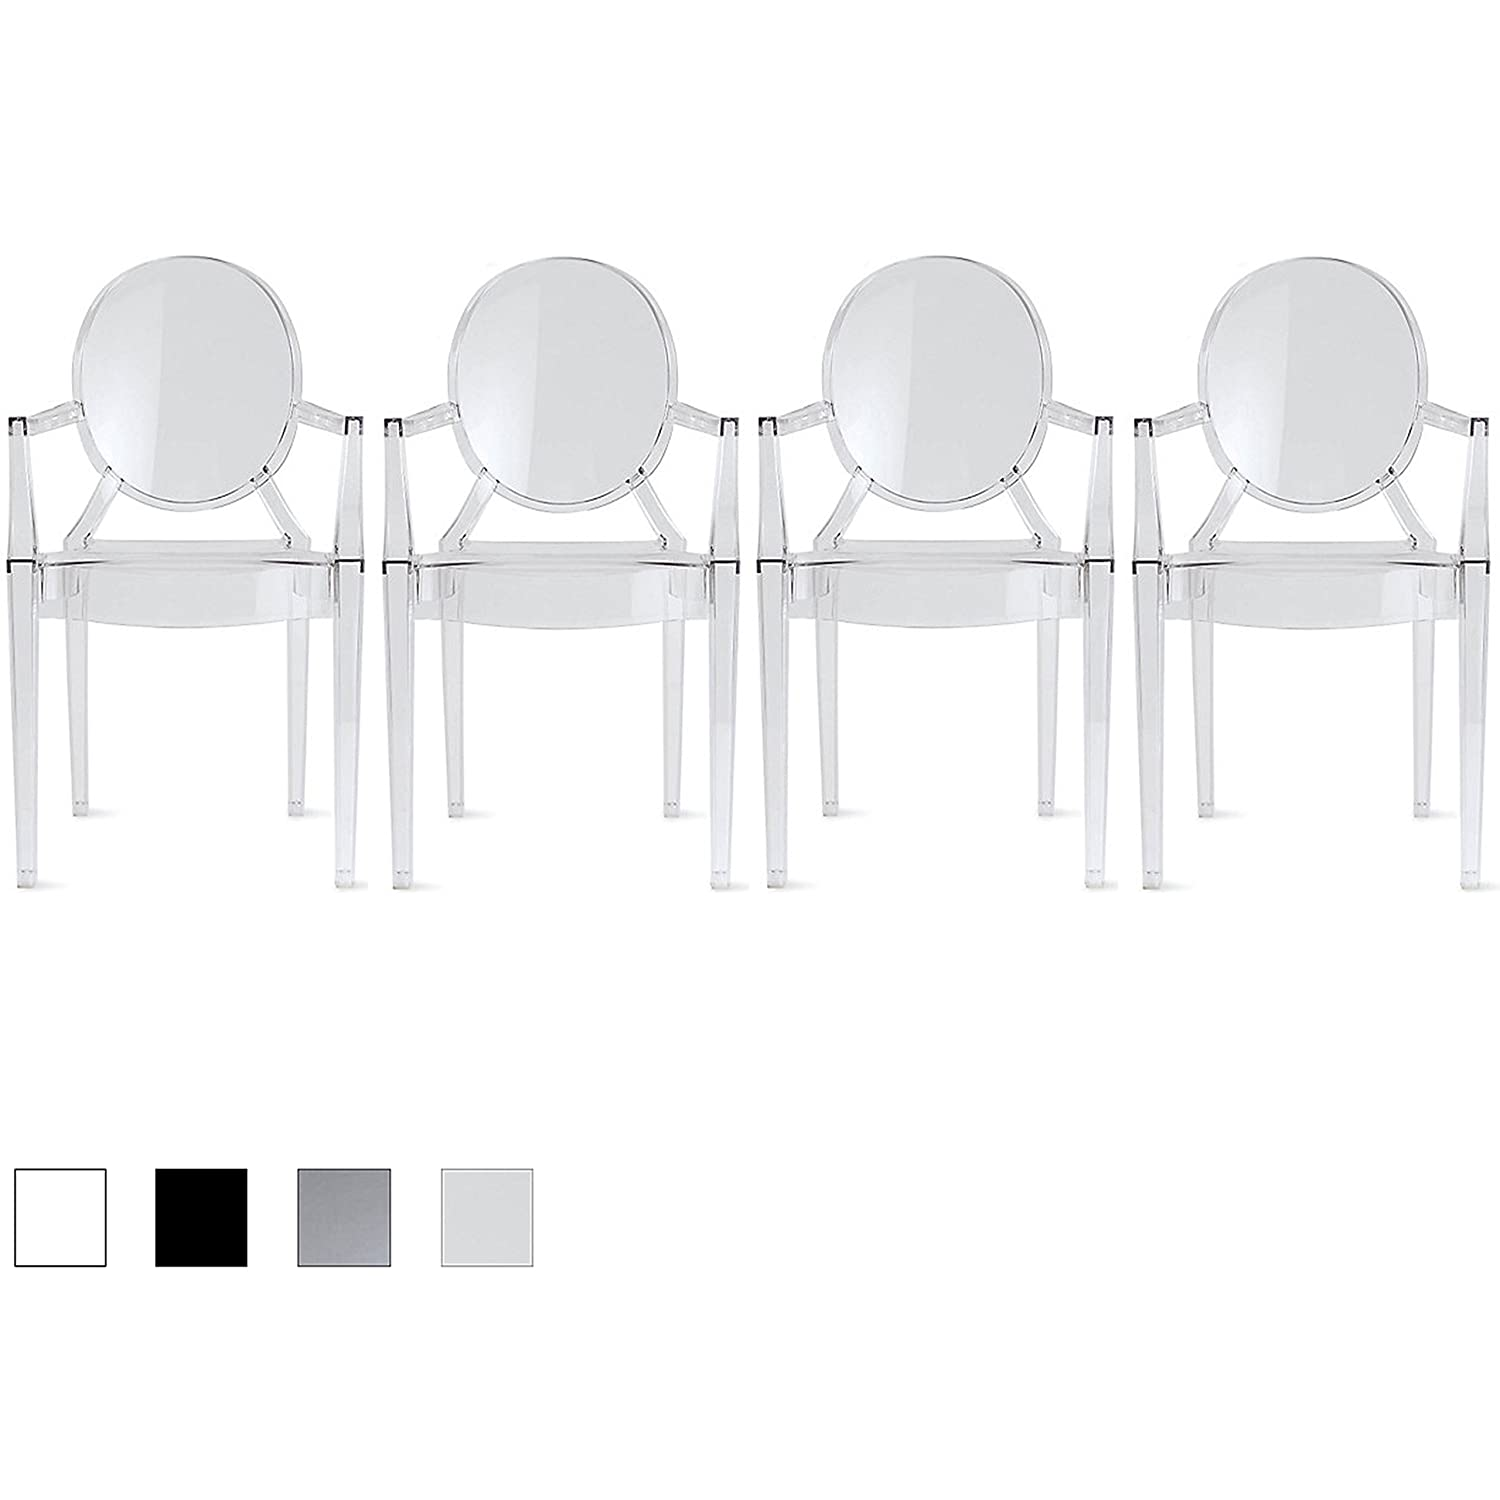 2xhome – Set of 4 Modern Designer Louis Ghost Armchairs with Polycarbonate Crystal Clear Transparent Plastic Dining Chairs